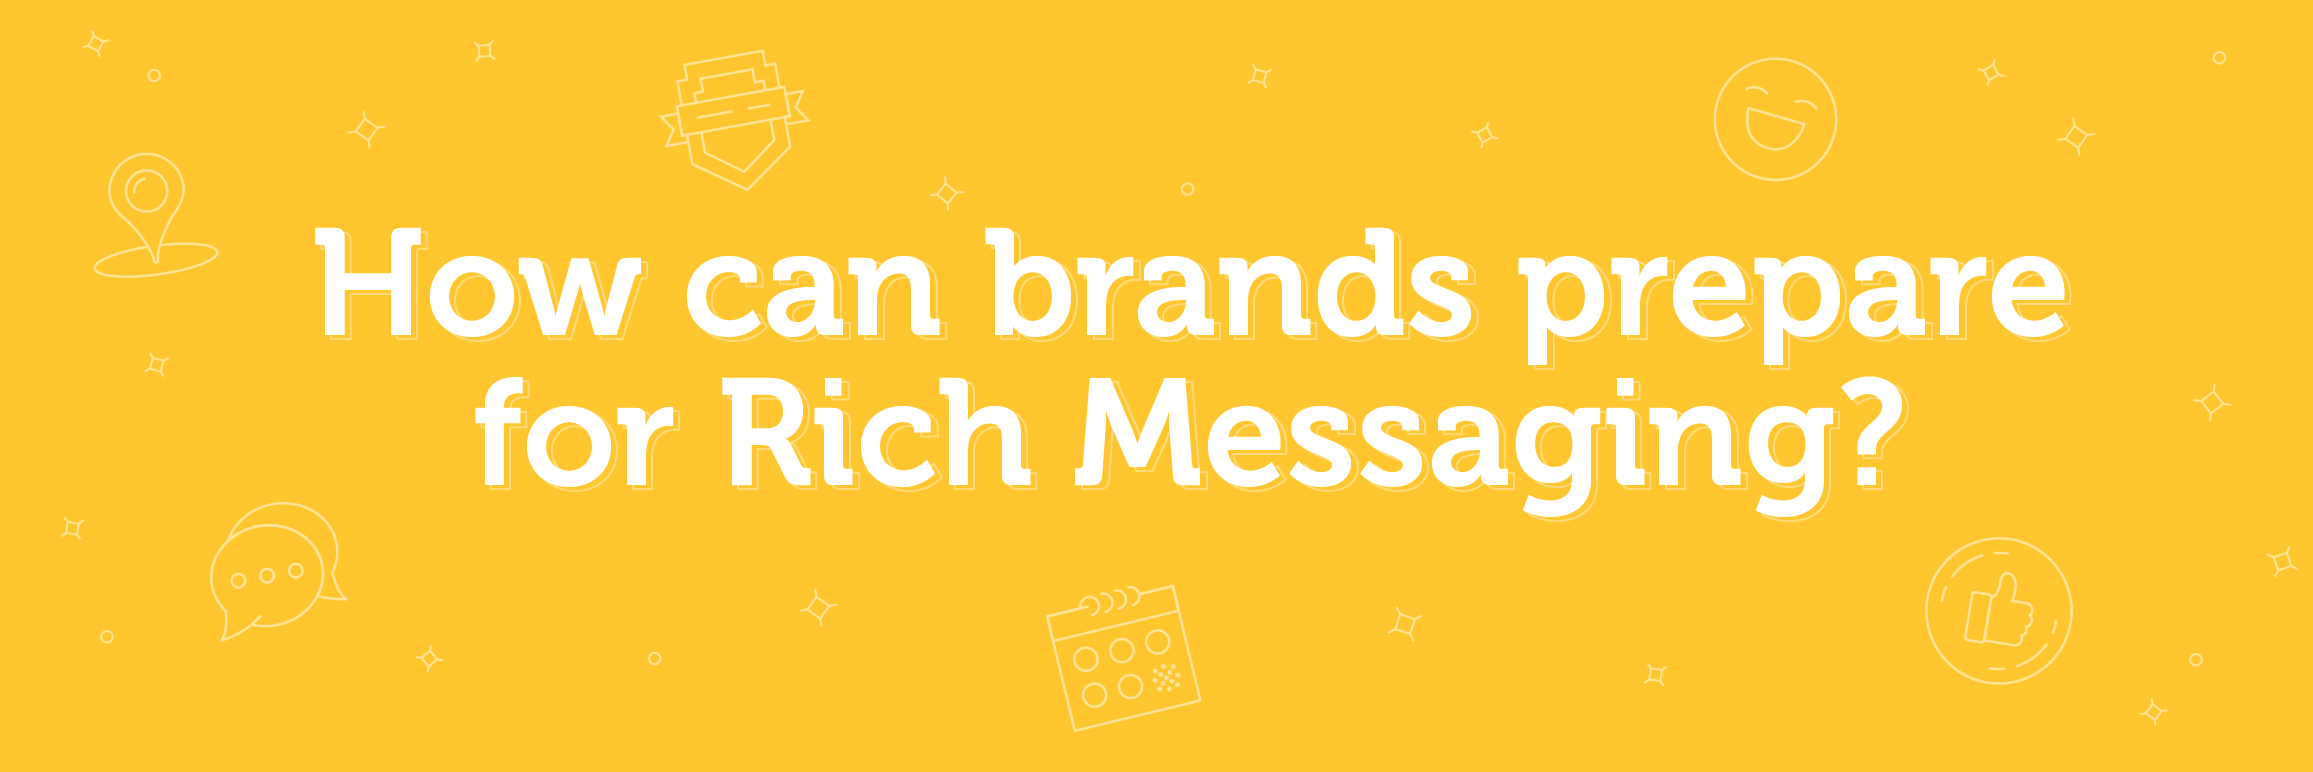 A yellow banner that says how can brands prepare for rich messaging